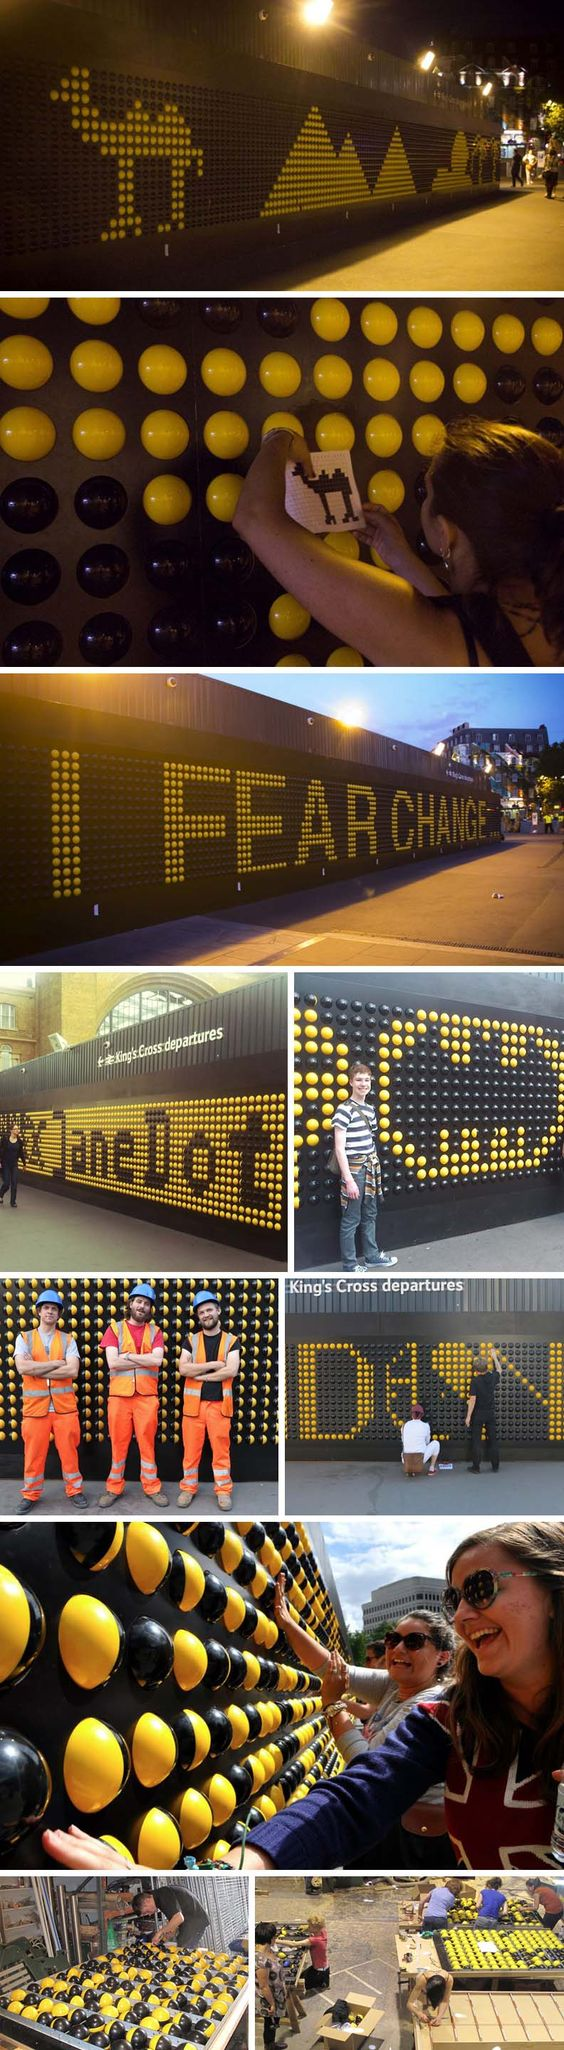 Click to enlarge These 2940 yellow and black plastic spheres across a 35m-long wall made up the fun and engaging interactive pop-up installation at London's King's Cross station called Song Board. ...